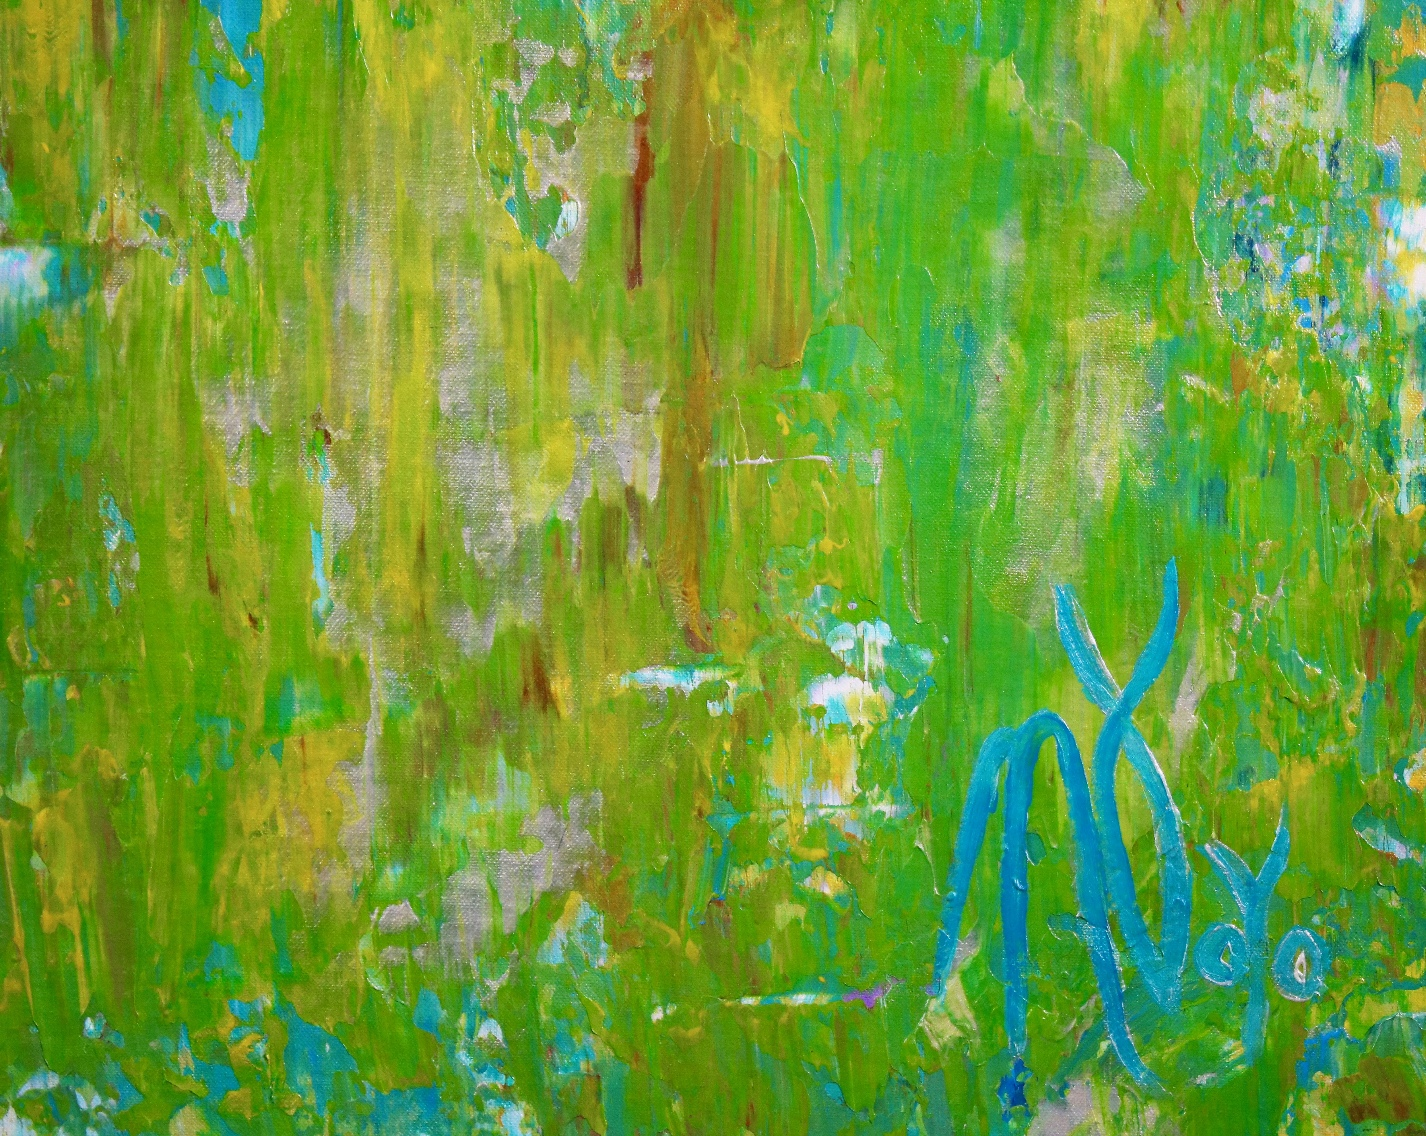 Detail View - Consciousness forest spectra by Nestor Toro (2019) 79 x 37 inches